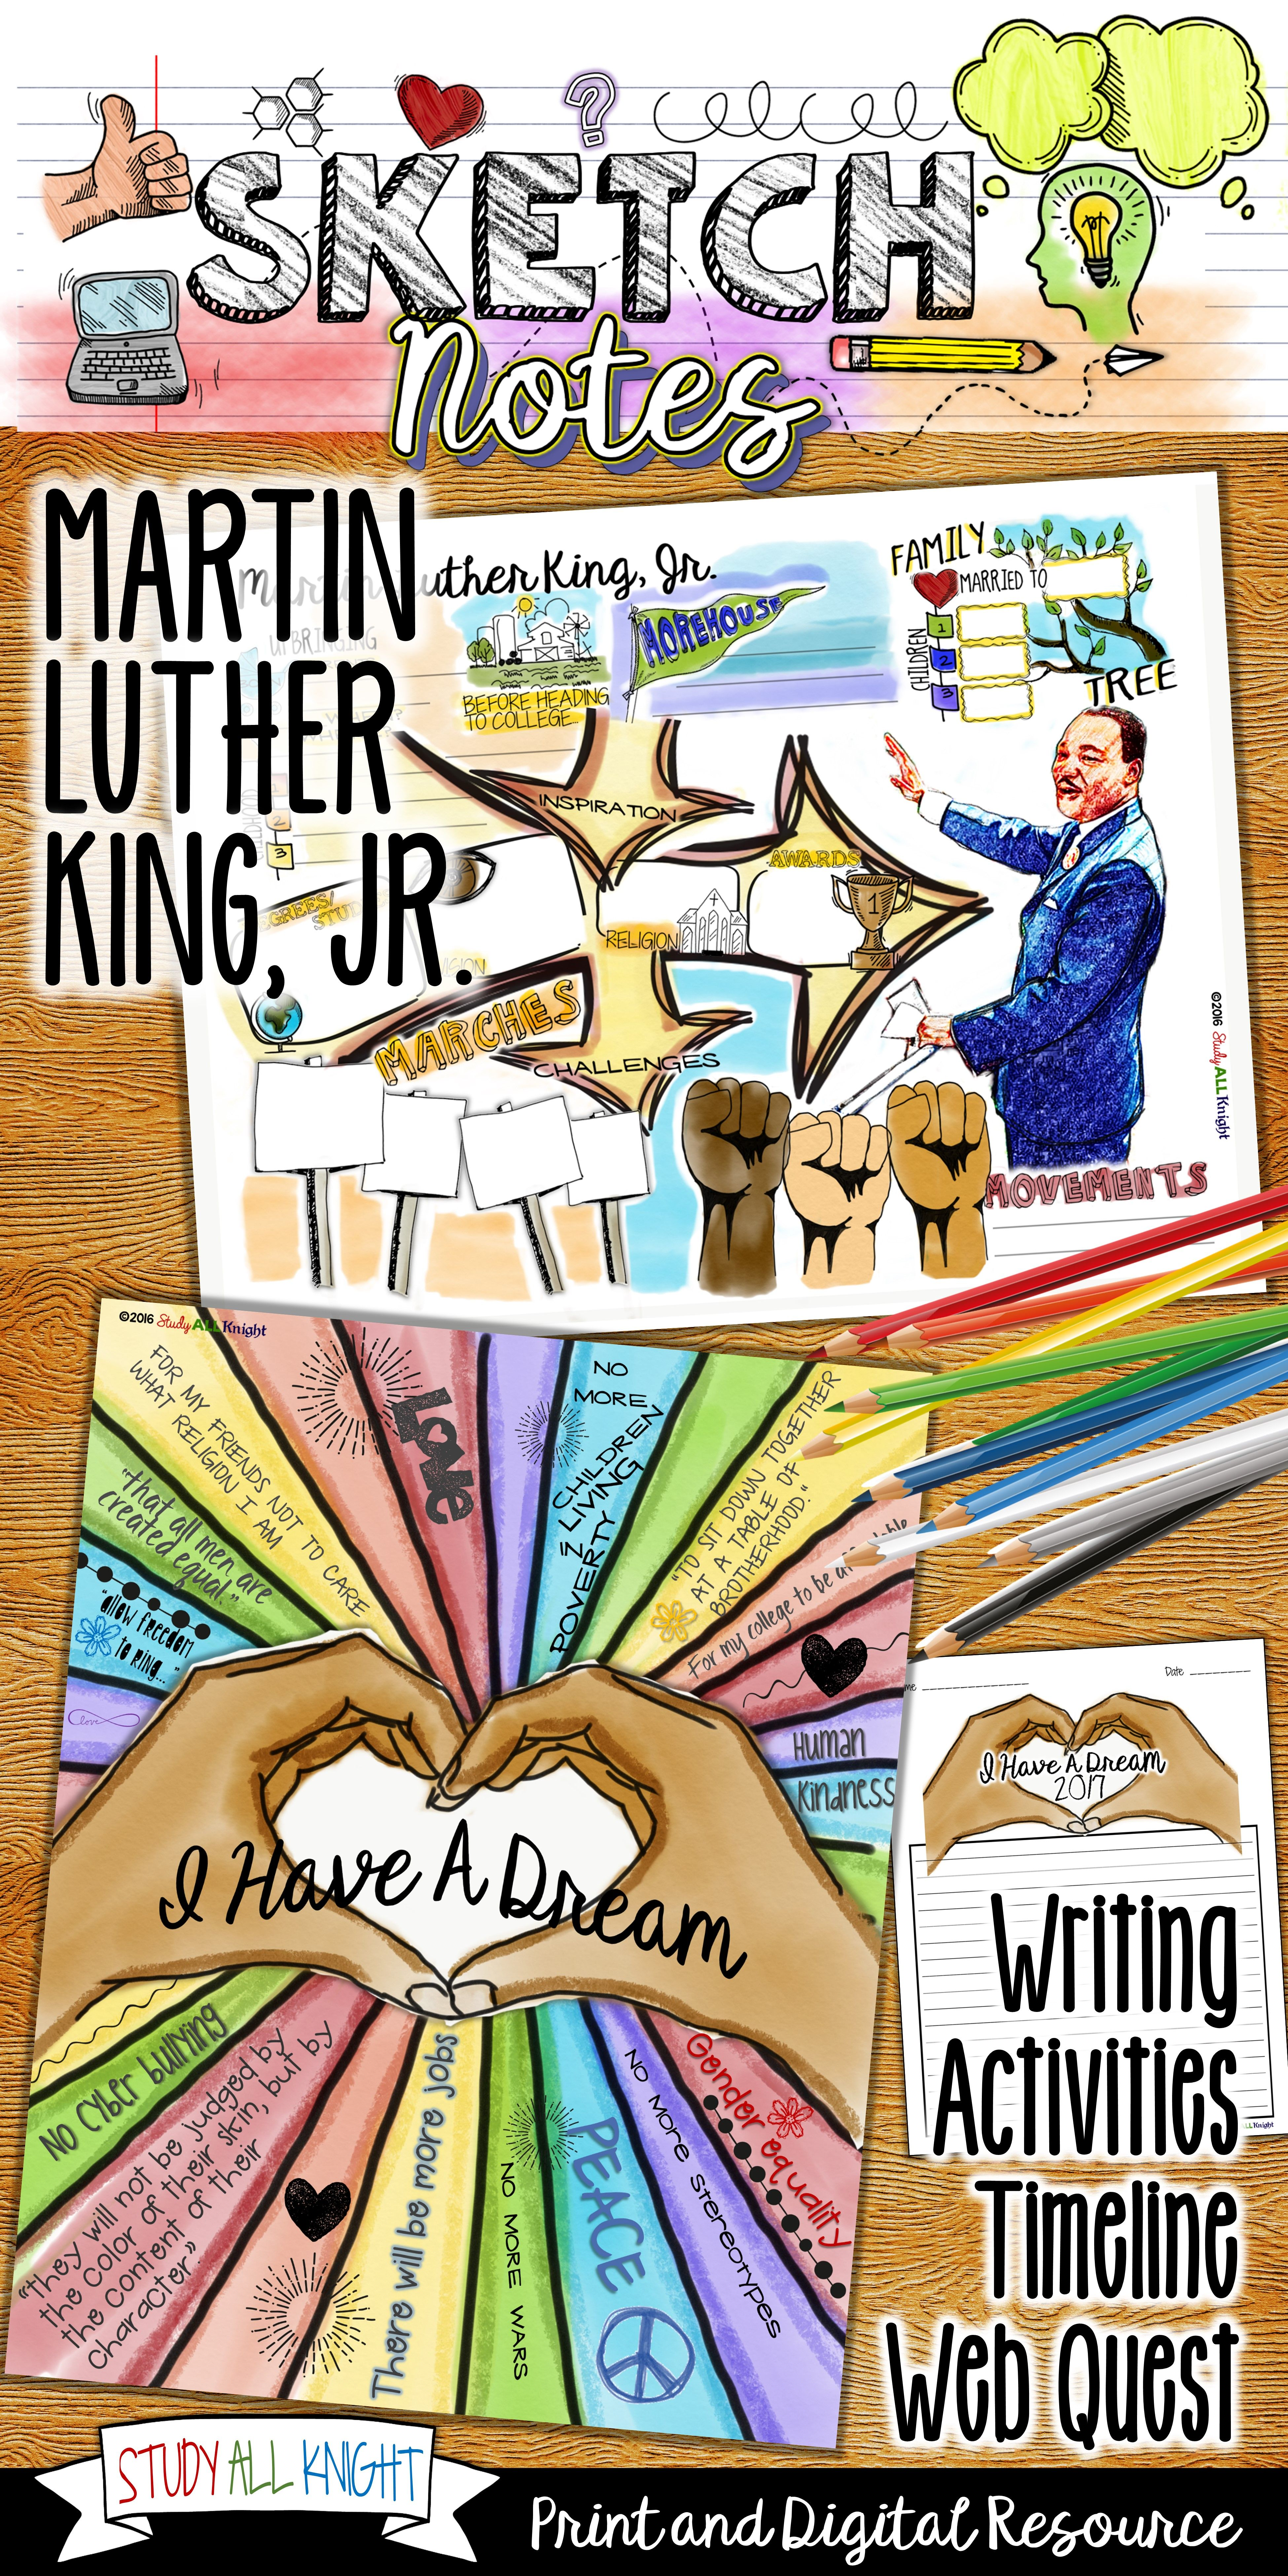 Martin Luther King Jr Writing Timeline Sketch Notes